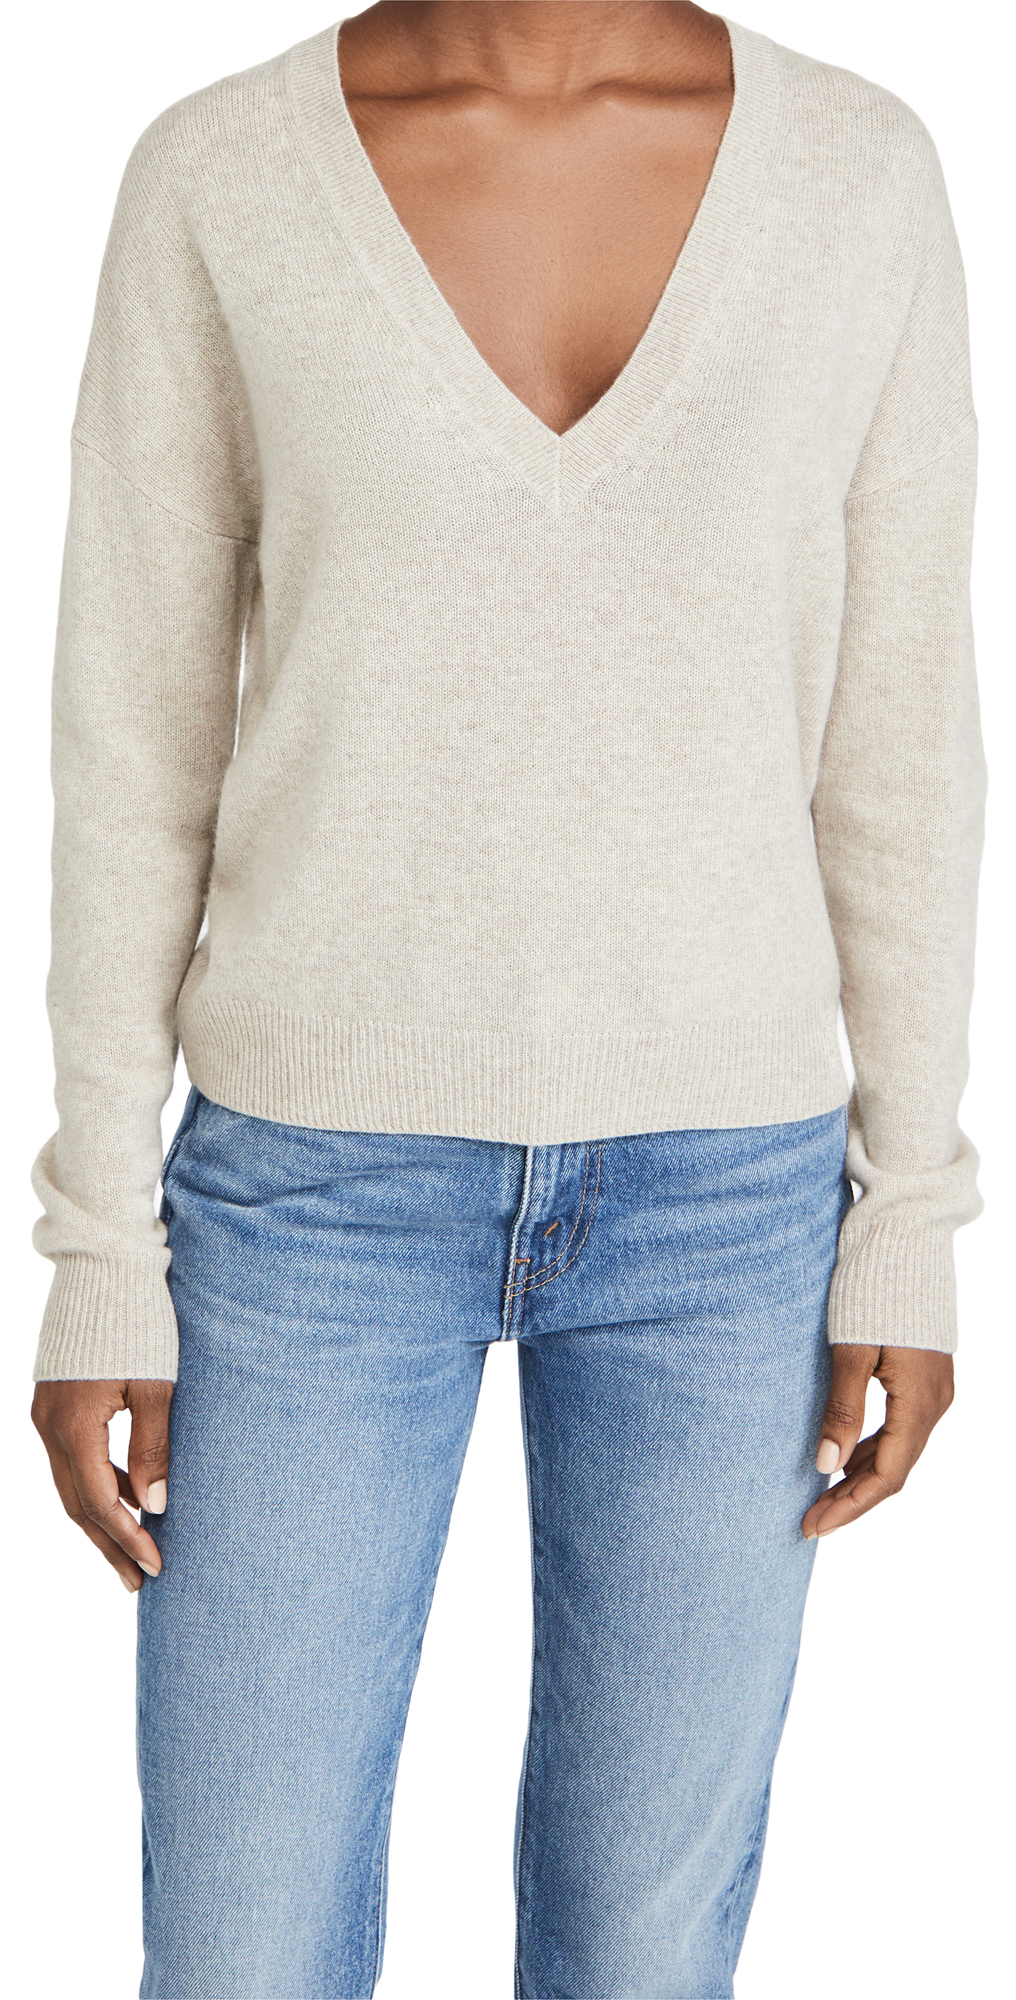 360 SWEATER Alexandria Cashmere Sweater